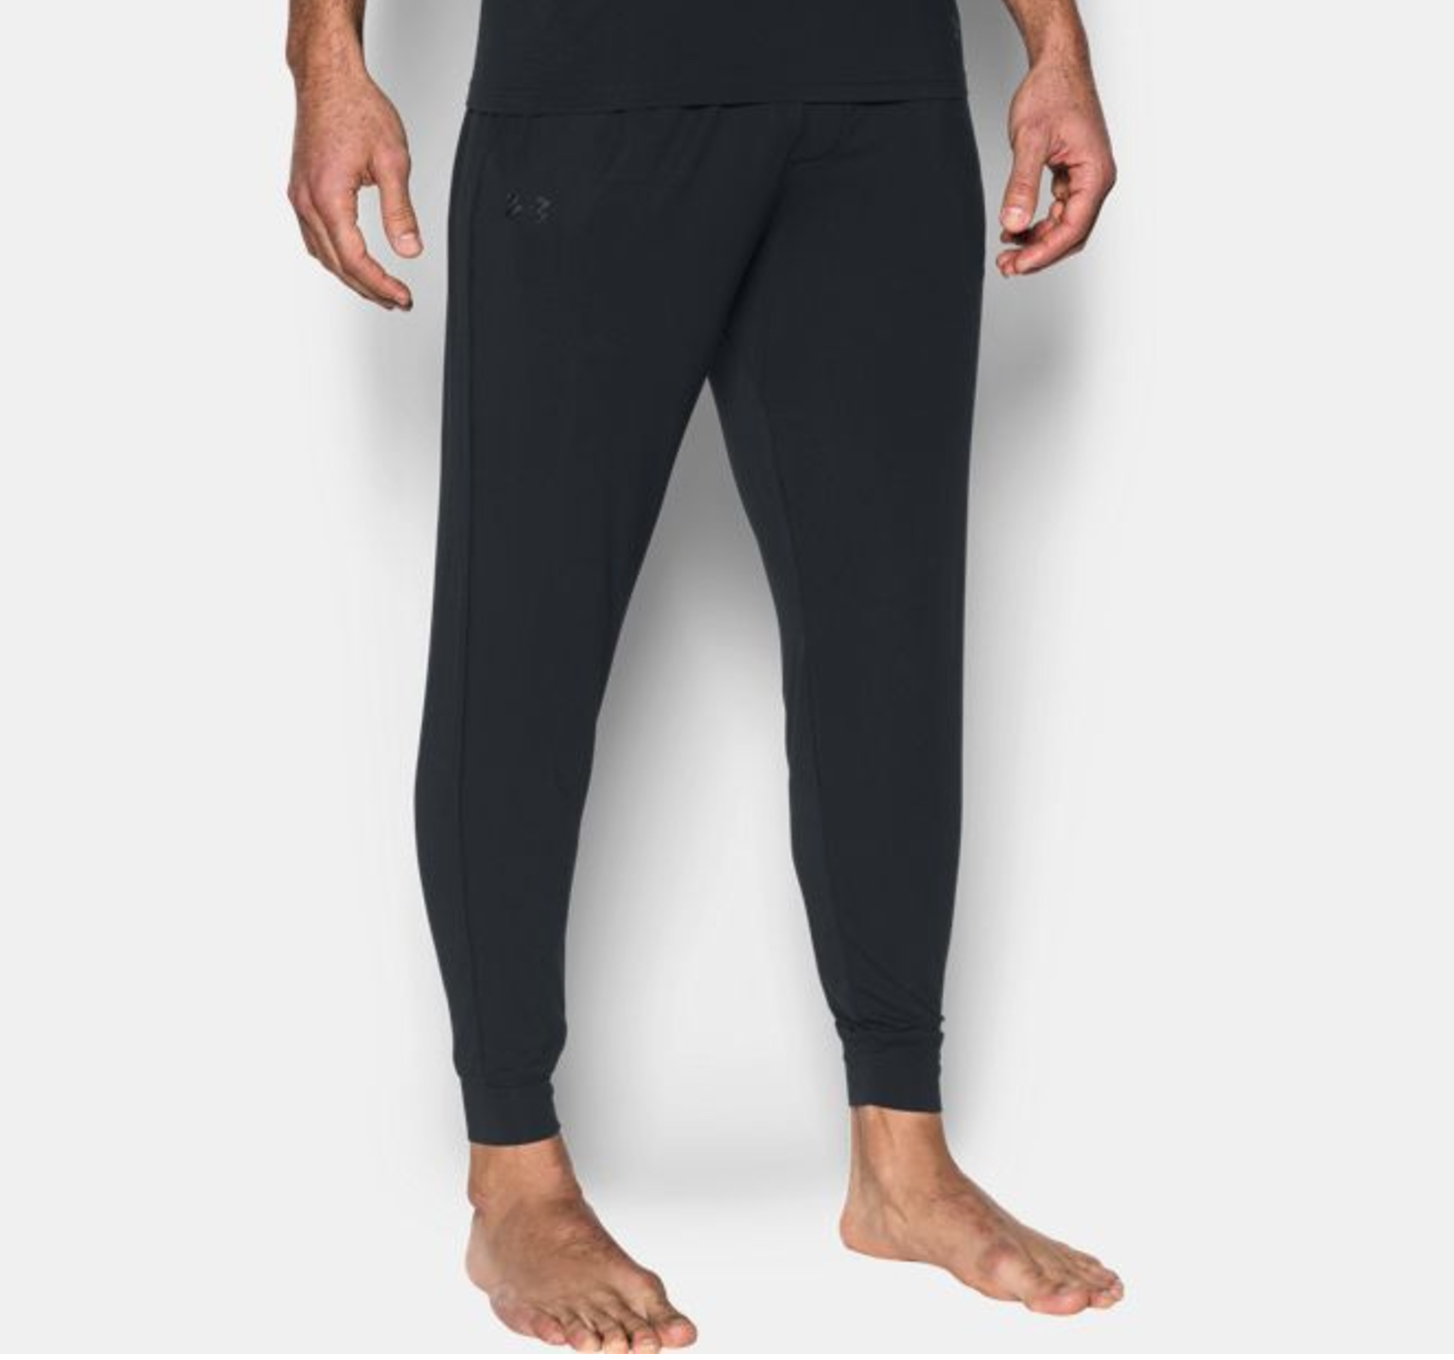 under armour athlete recovery sleepwear 3